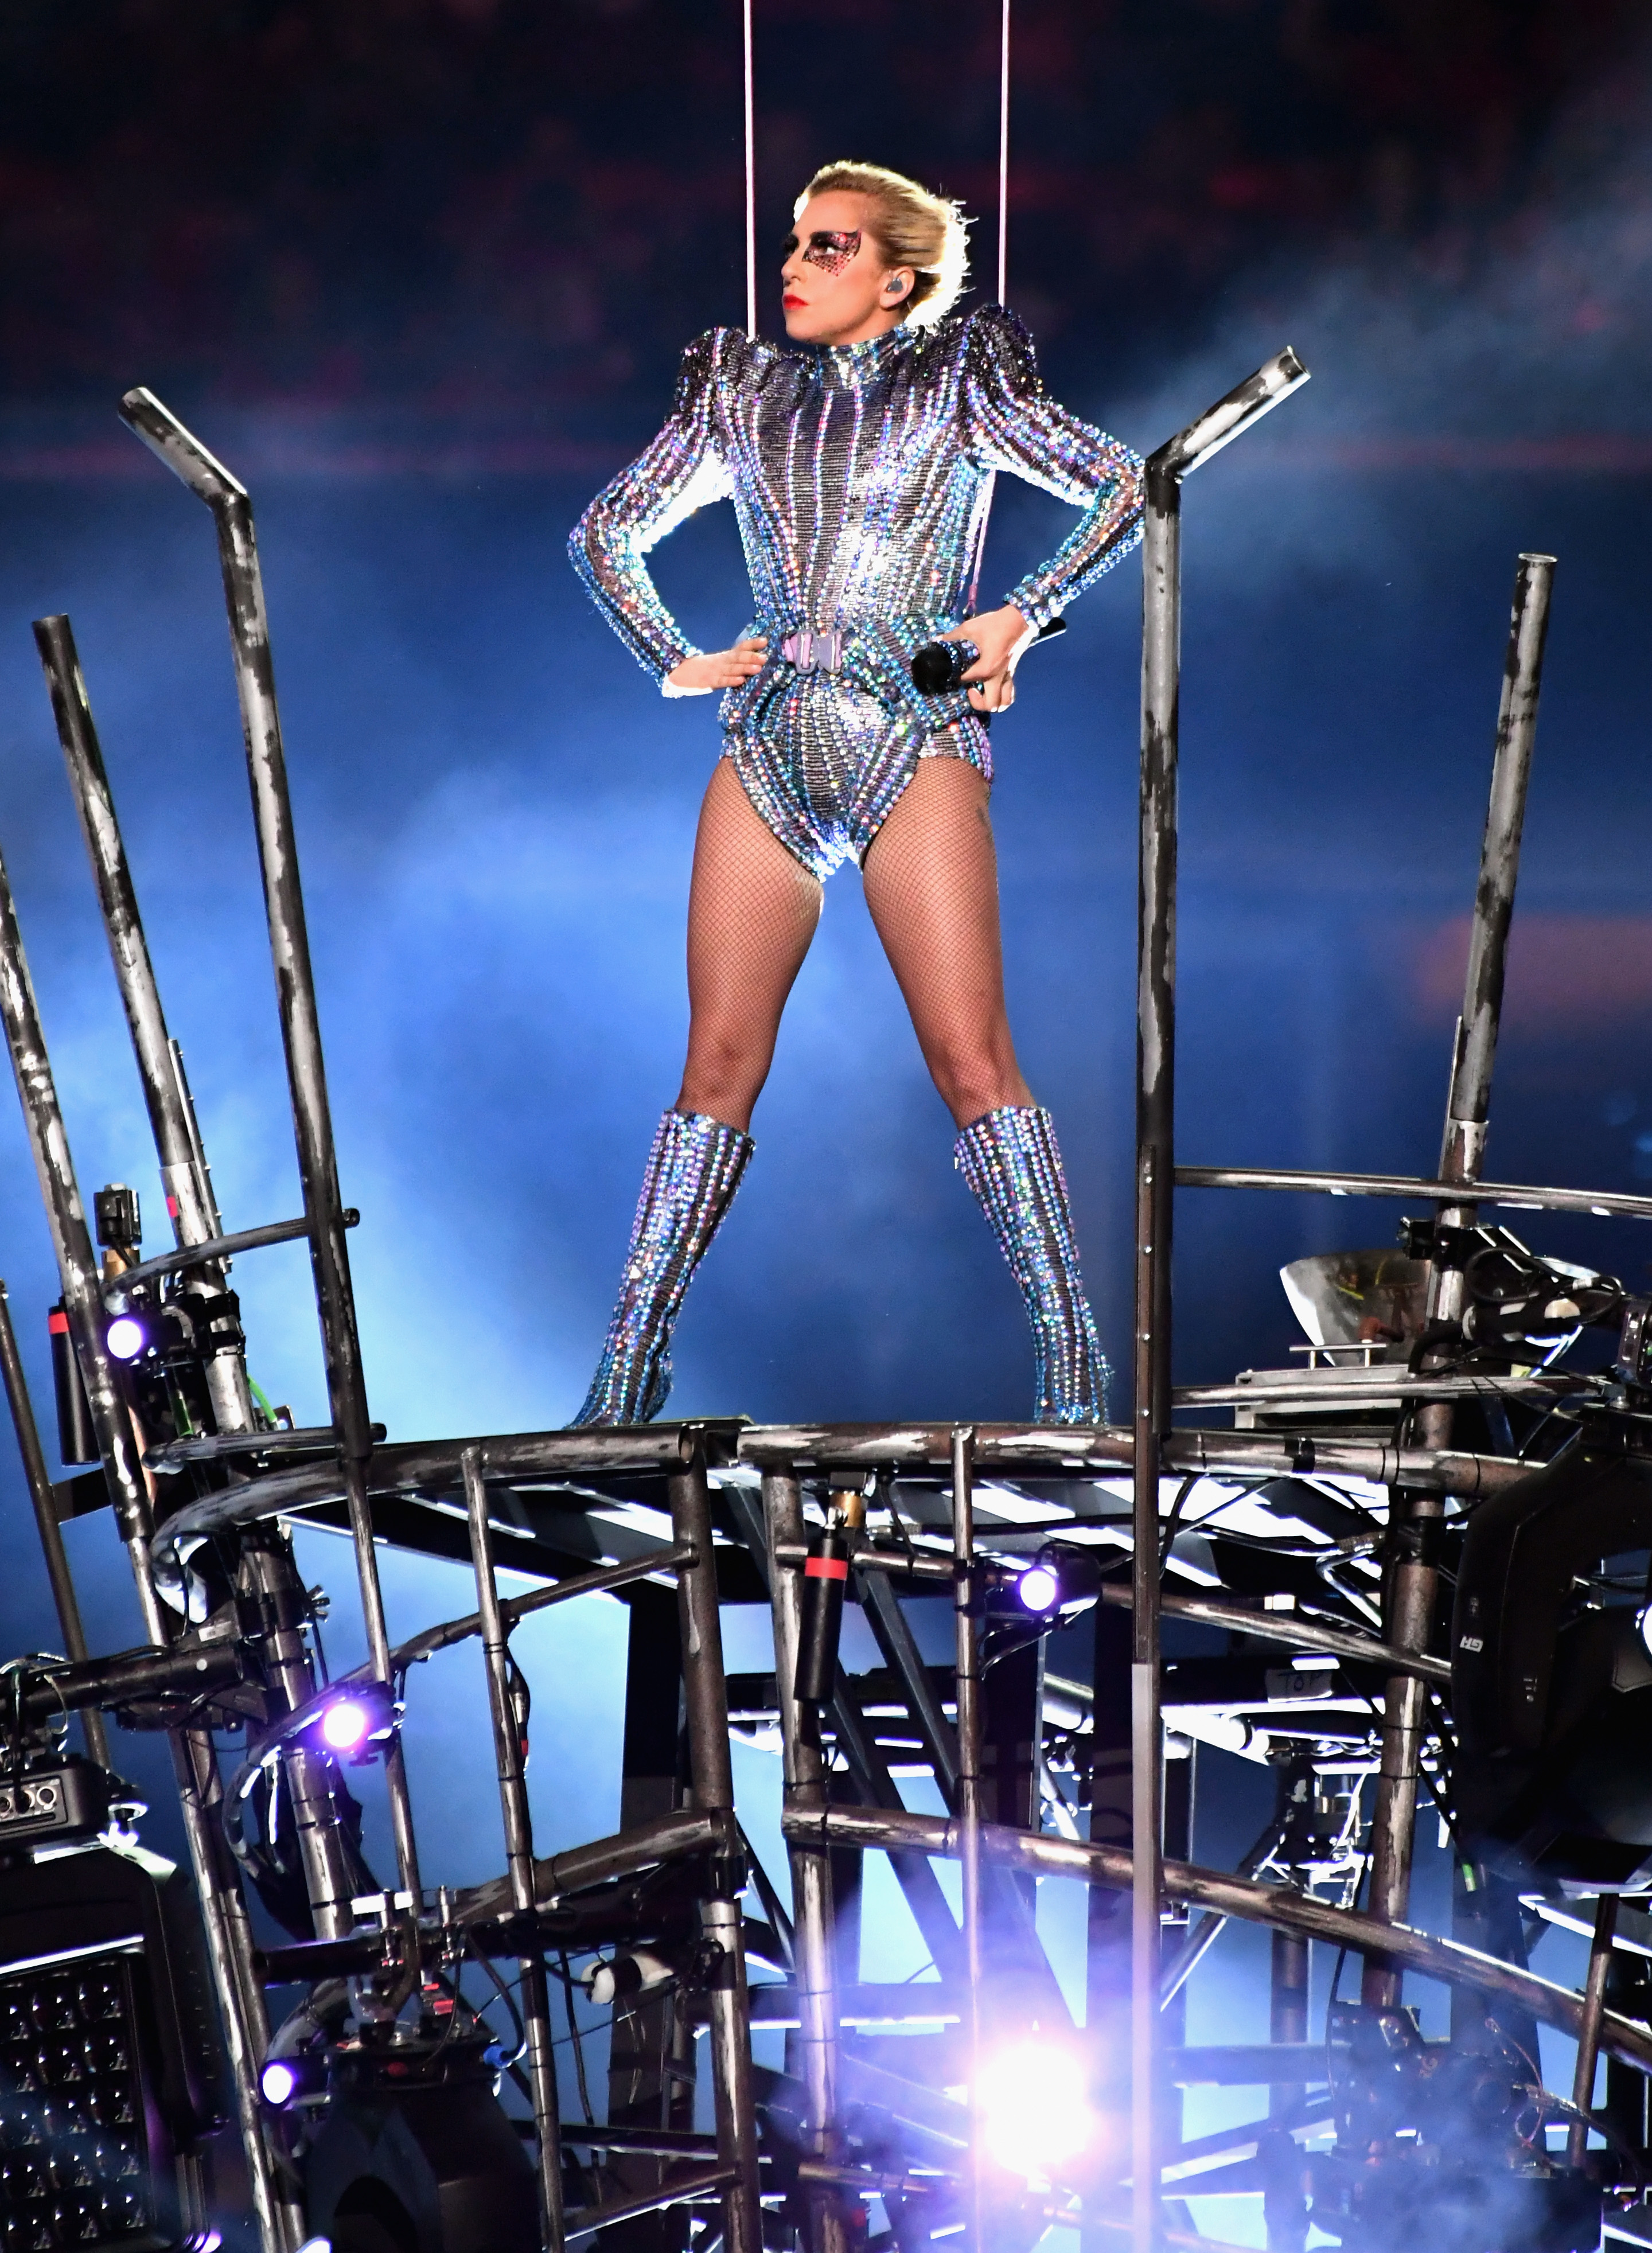 HOUSTON, TX - FEBRUARY 05: Musician Lady Gaga performs onstage during the [f500link]Pepsi[/f500link] Zero Sugar Super Bowl LI Halftime Show at [f500link]NRG[/f500link] Stadium on February 5, 2017 in Houston, Texas. (Photo by Jeff Kravitz/FilmMagic)